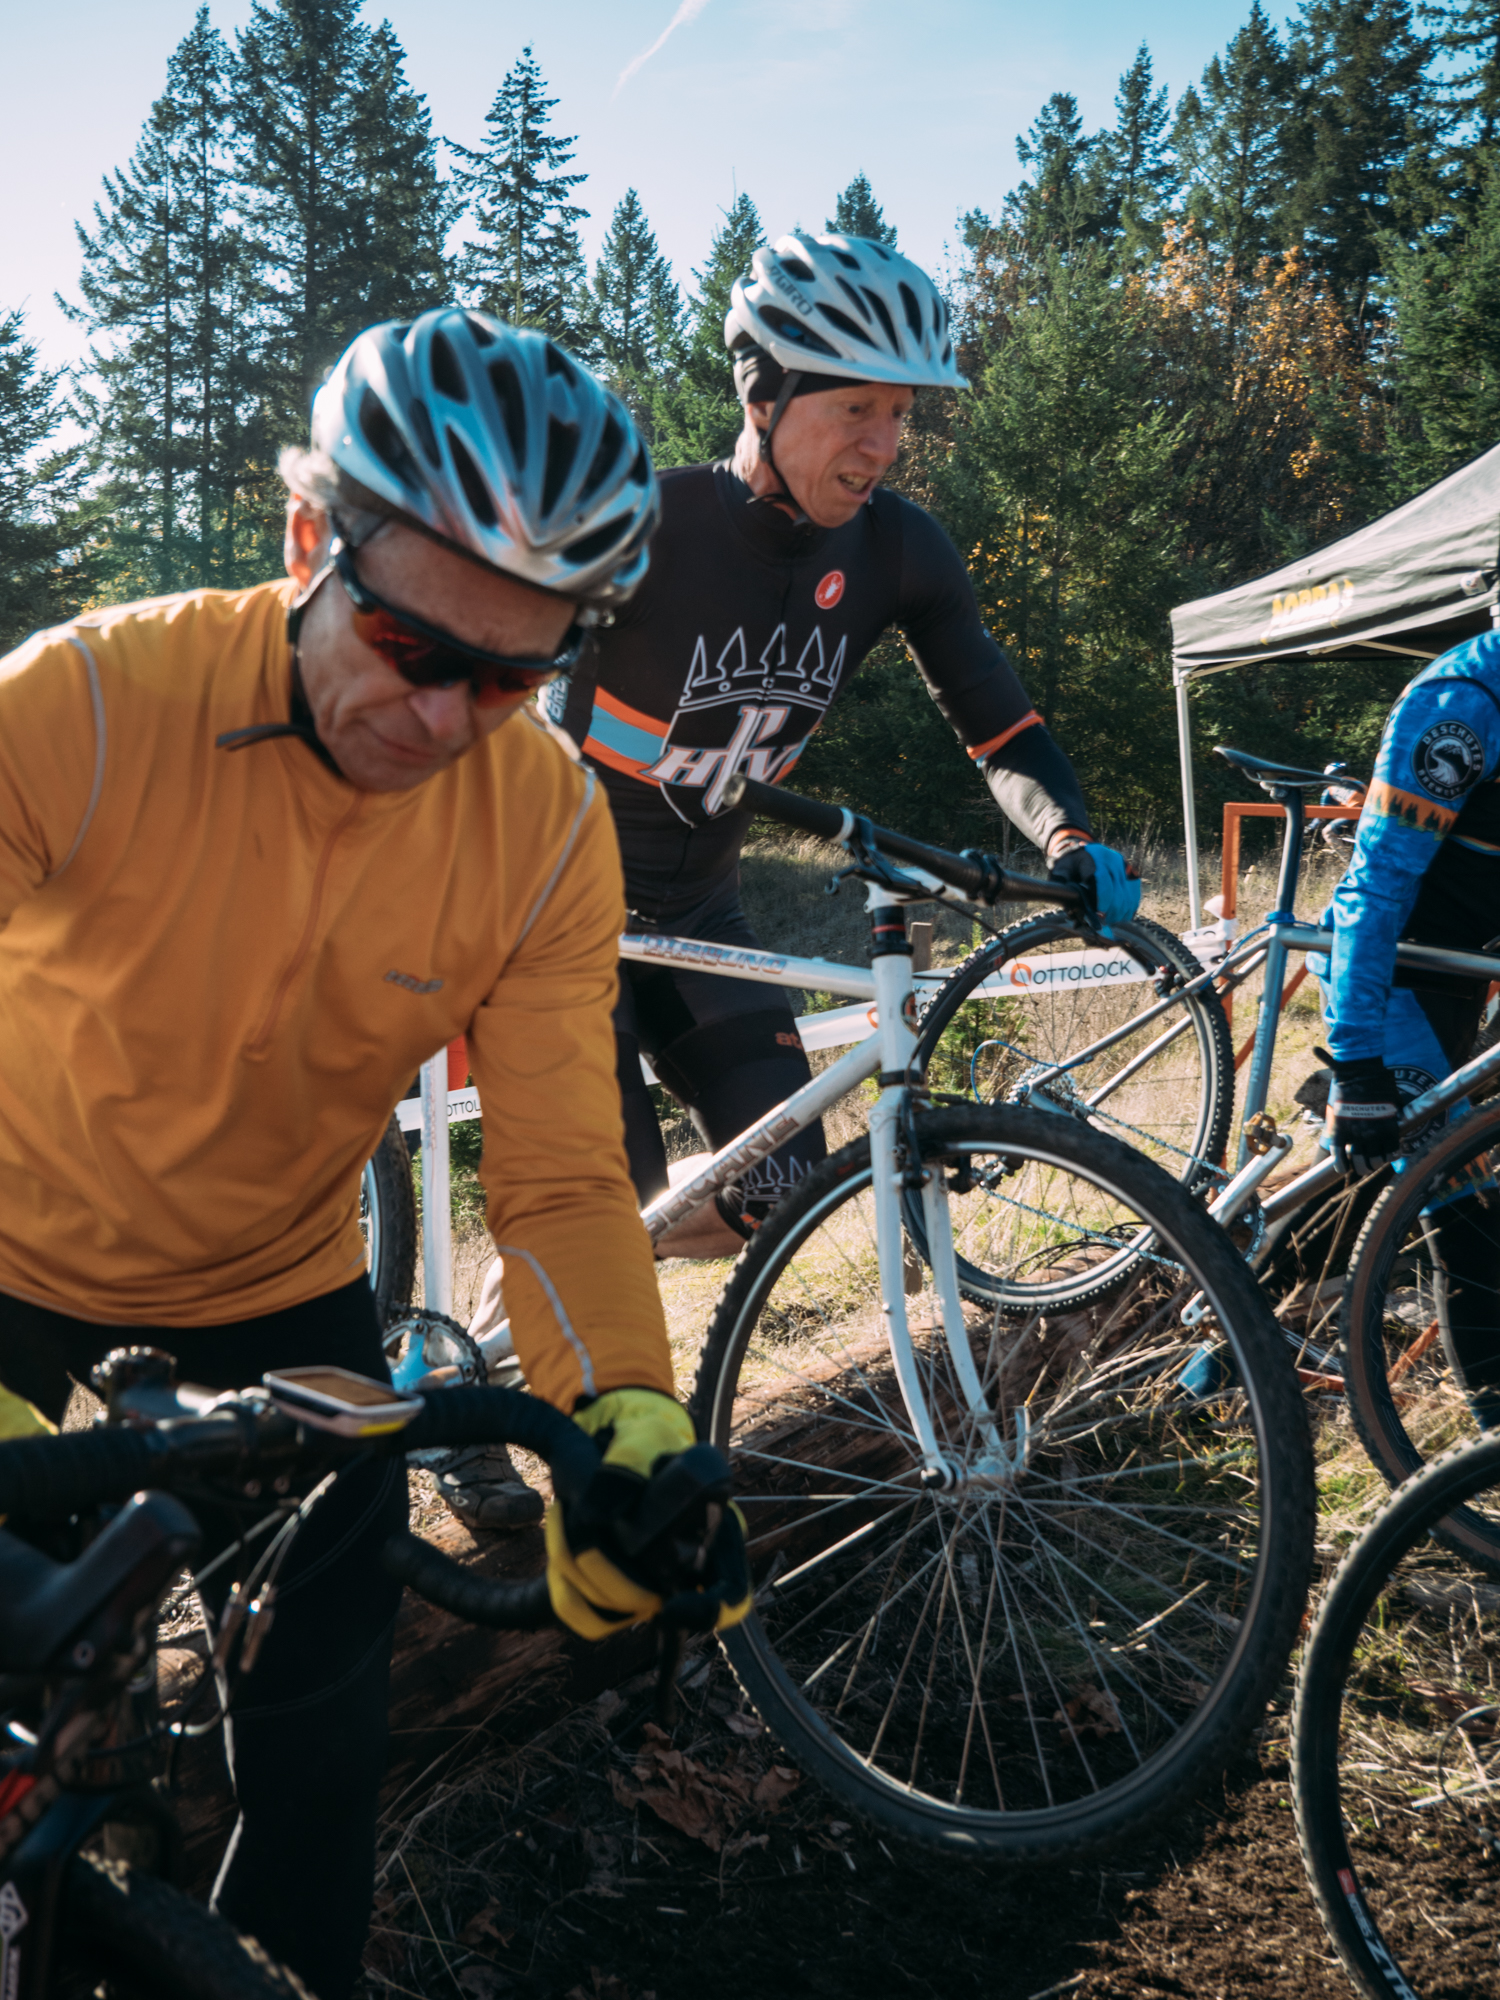 Cyclocross18_CCCX_BartonPark-mettlecycling44.jpg